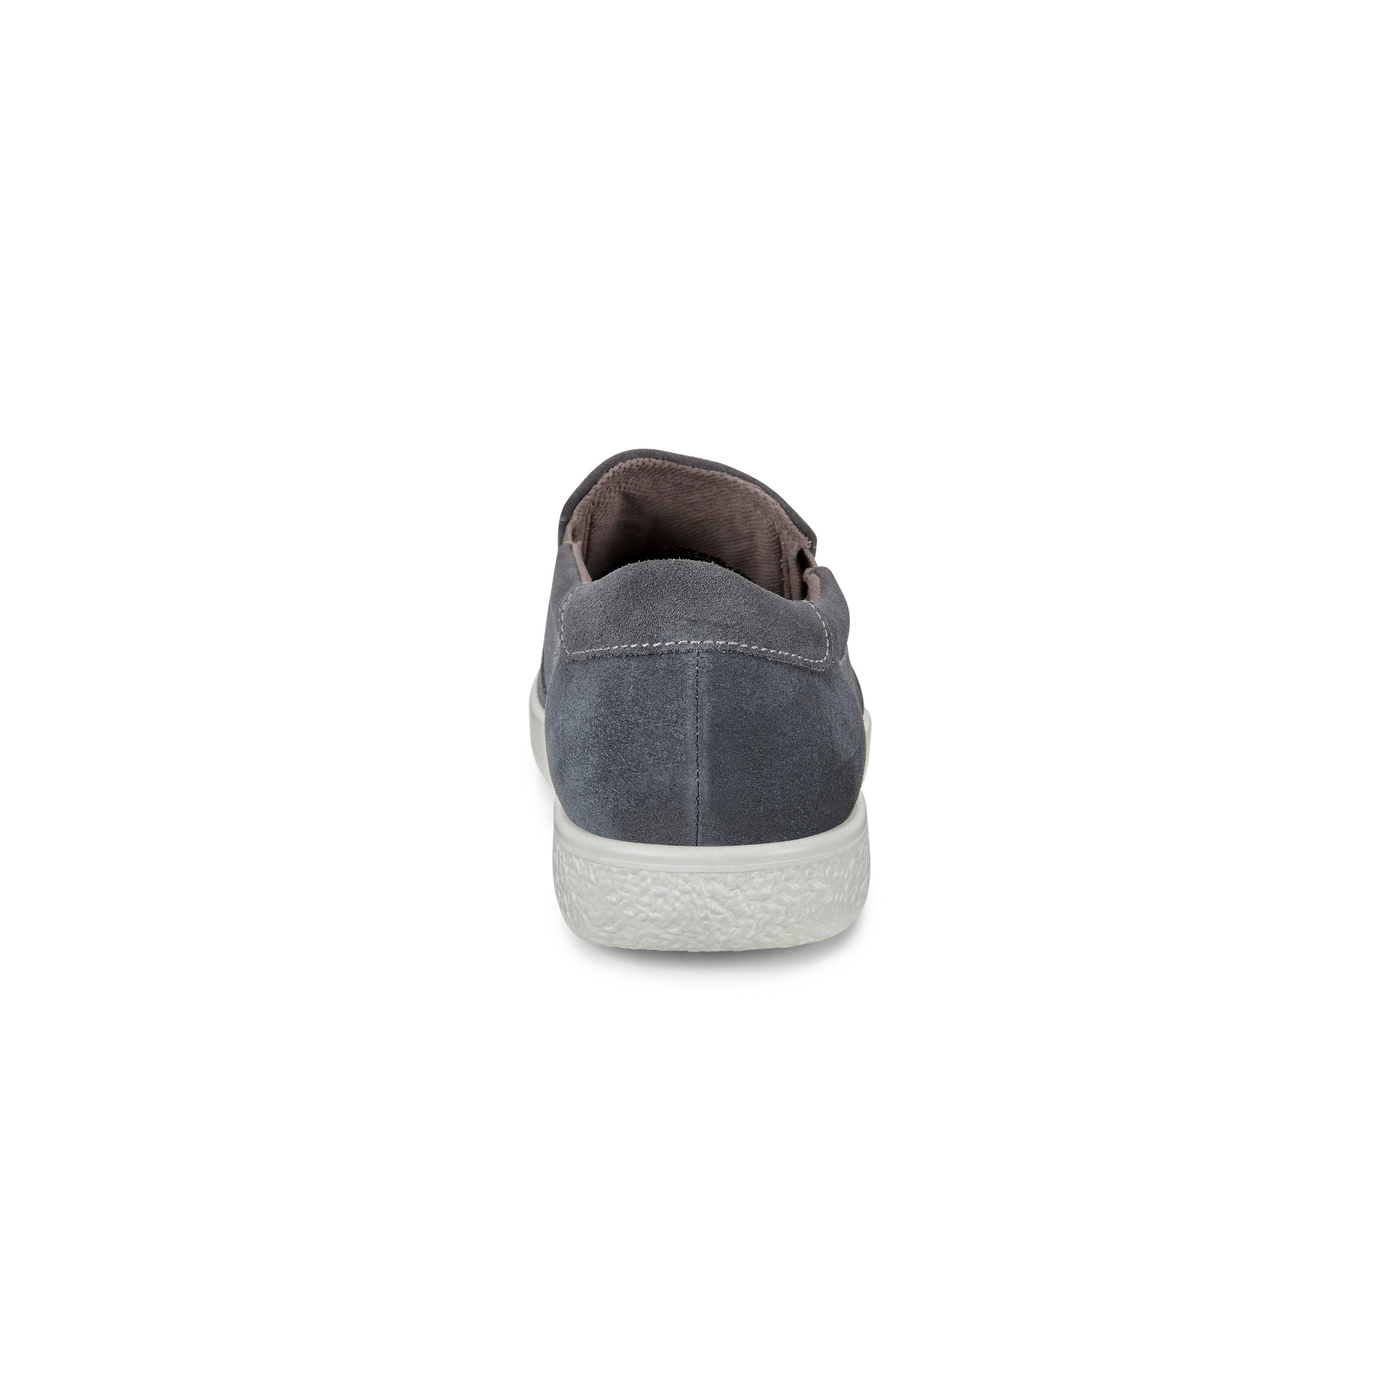 ECCO SOFT1 Mens Sneaker Slip On